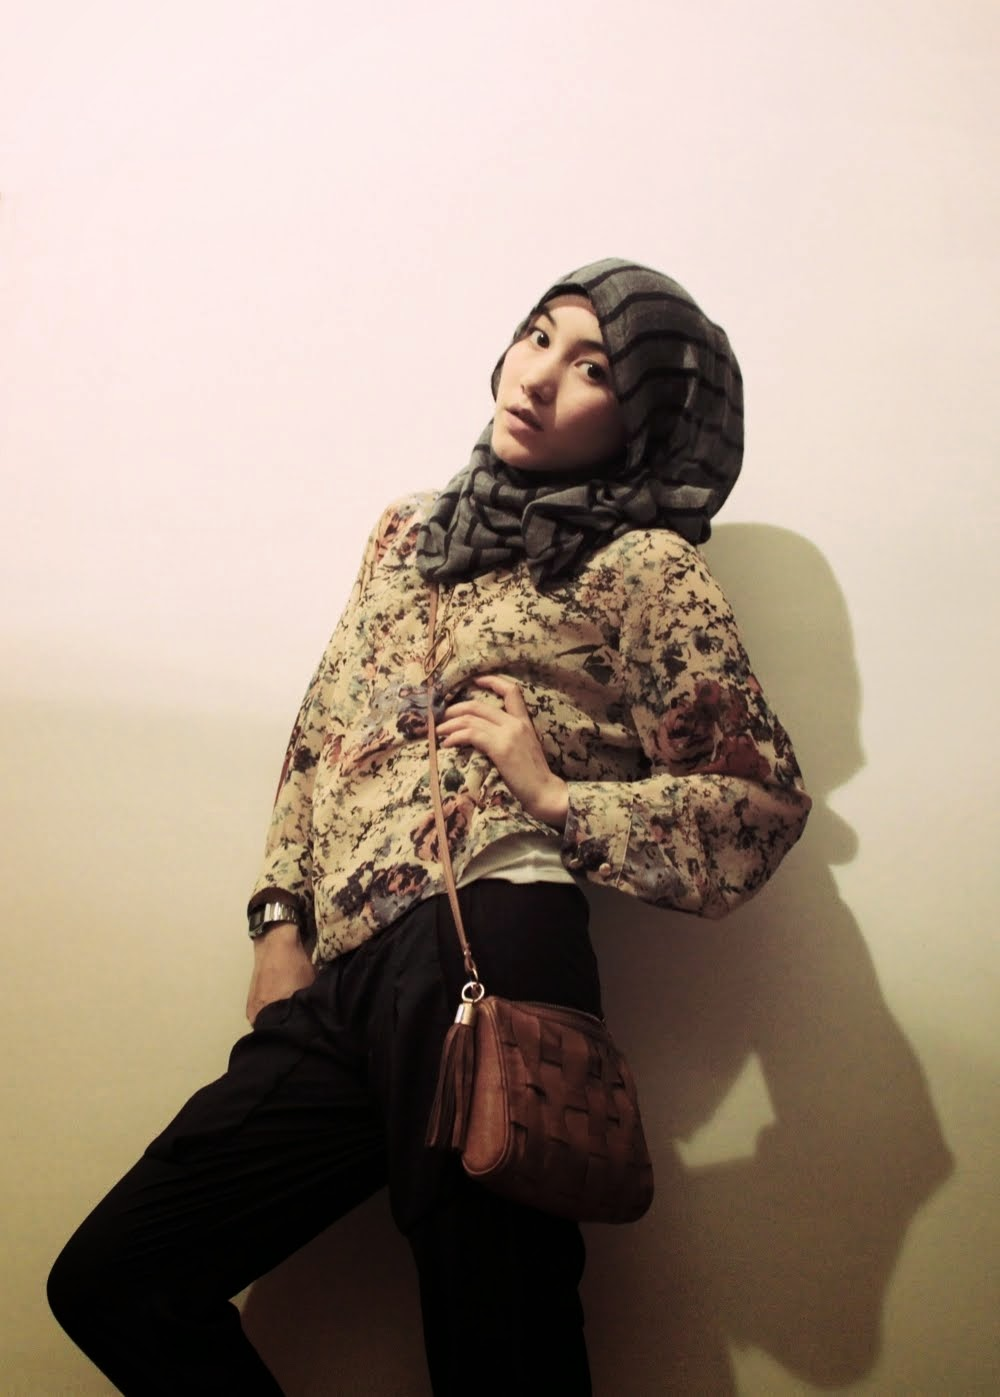 Hana tajima 39 s hijab collection Hijab fashion style hana tajima